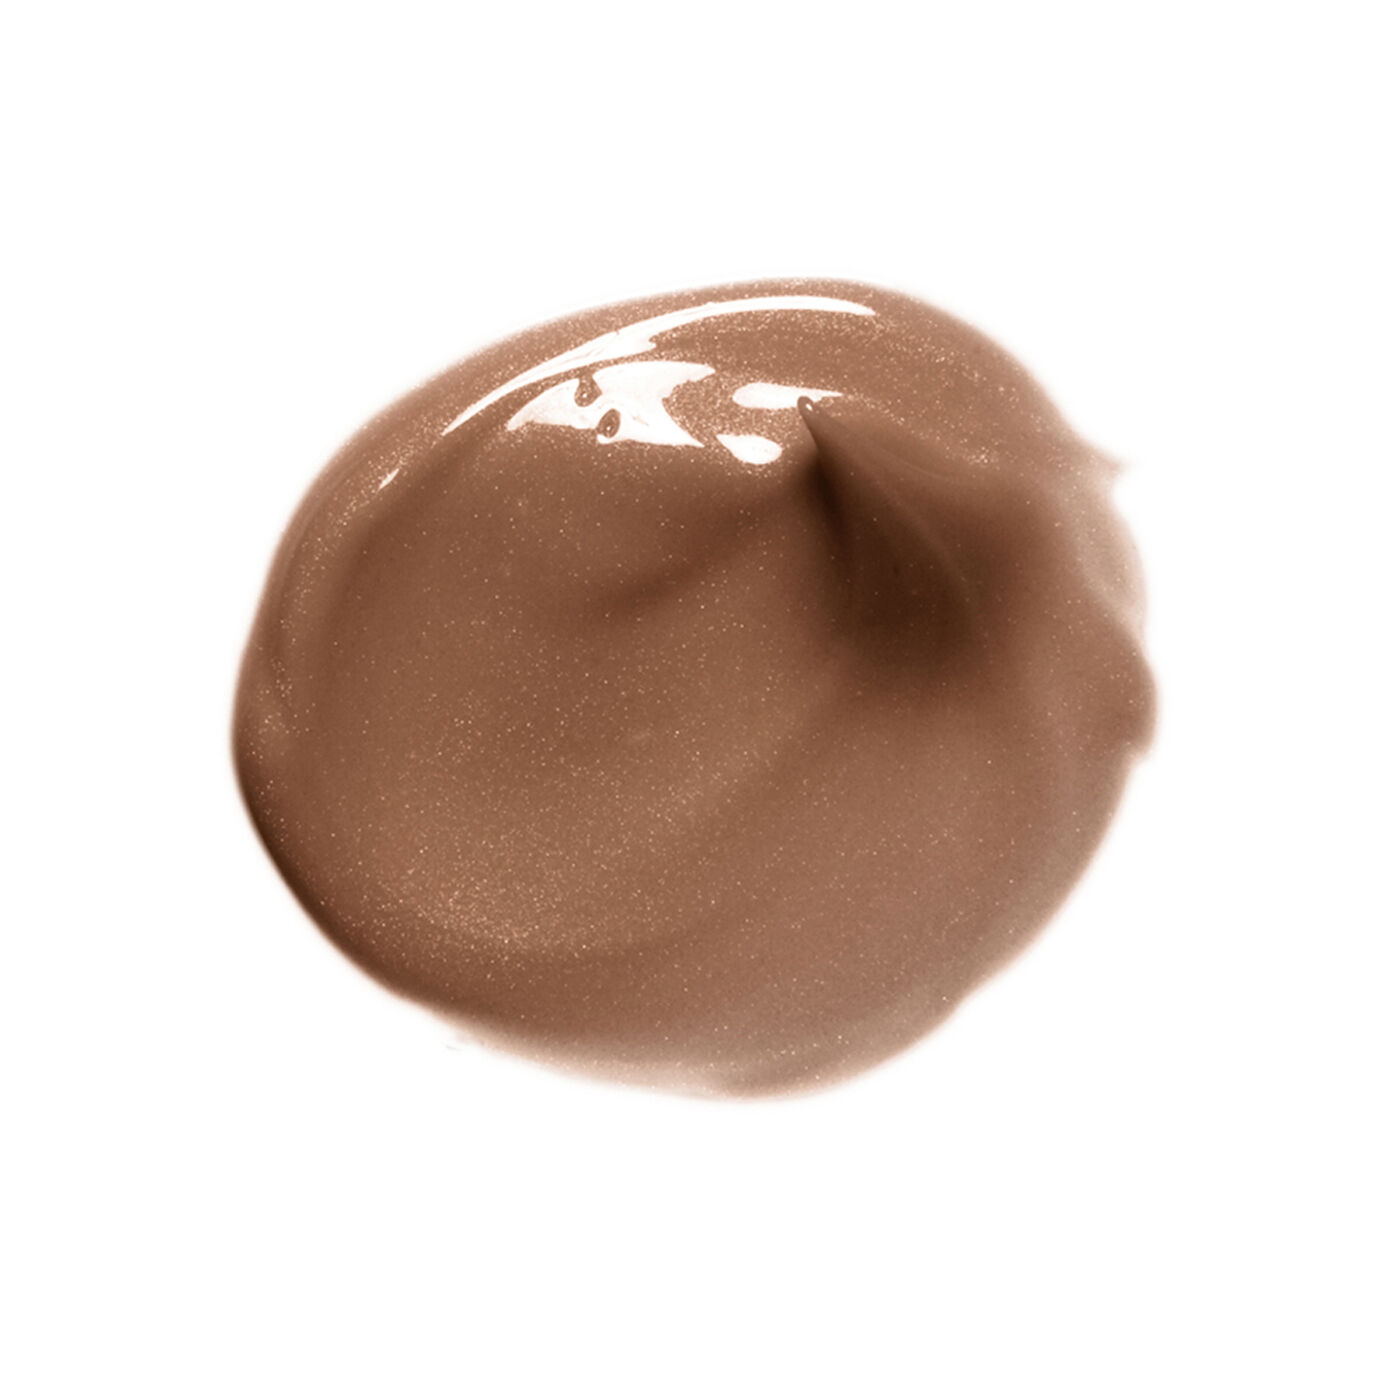 Selbstbr%C3%A4uner-Creme%20D%C3%A9licieuse%20f%C3%BCr%20Gesicht%20&%20K%C3%B6rper